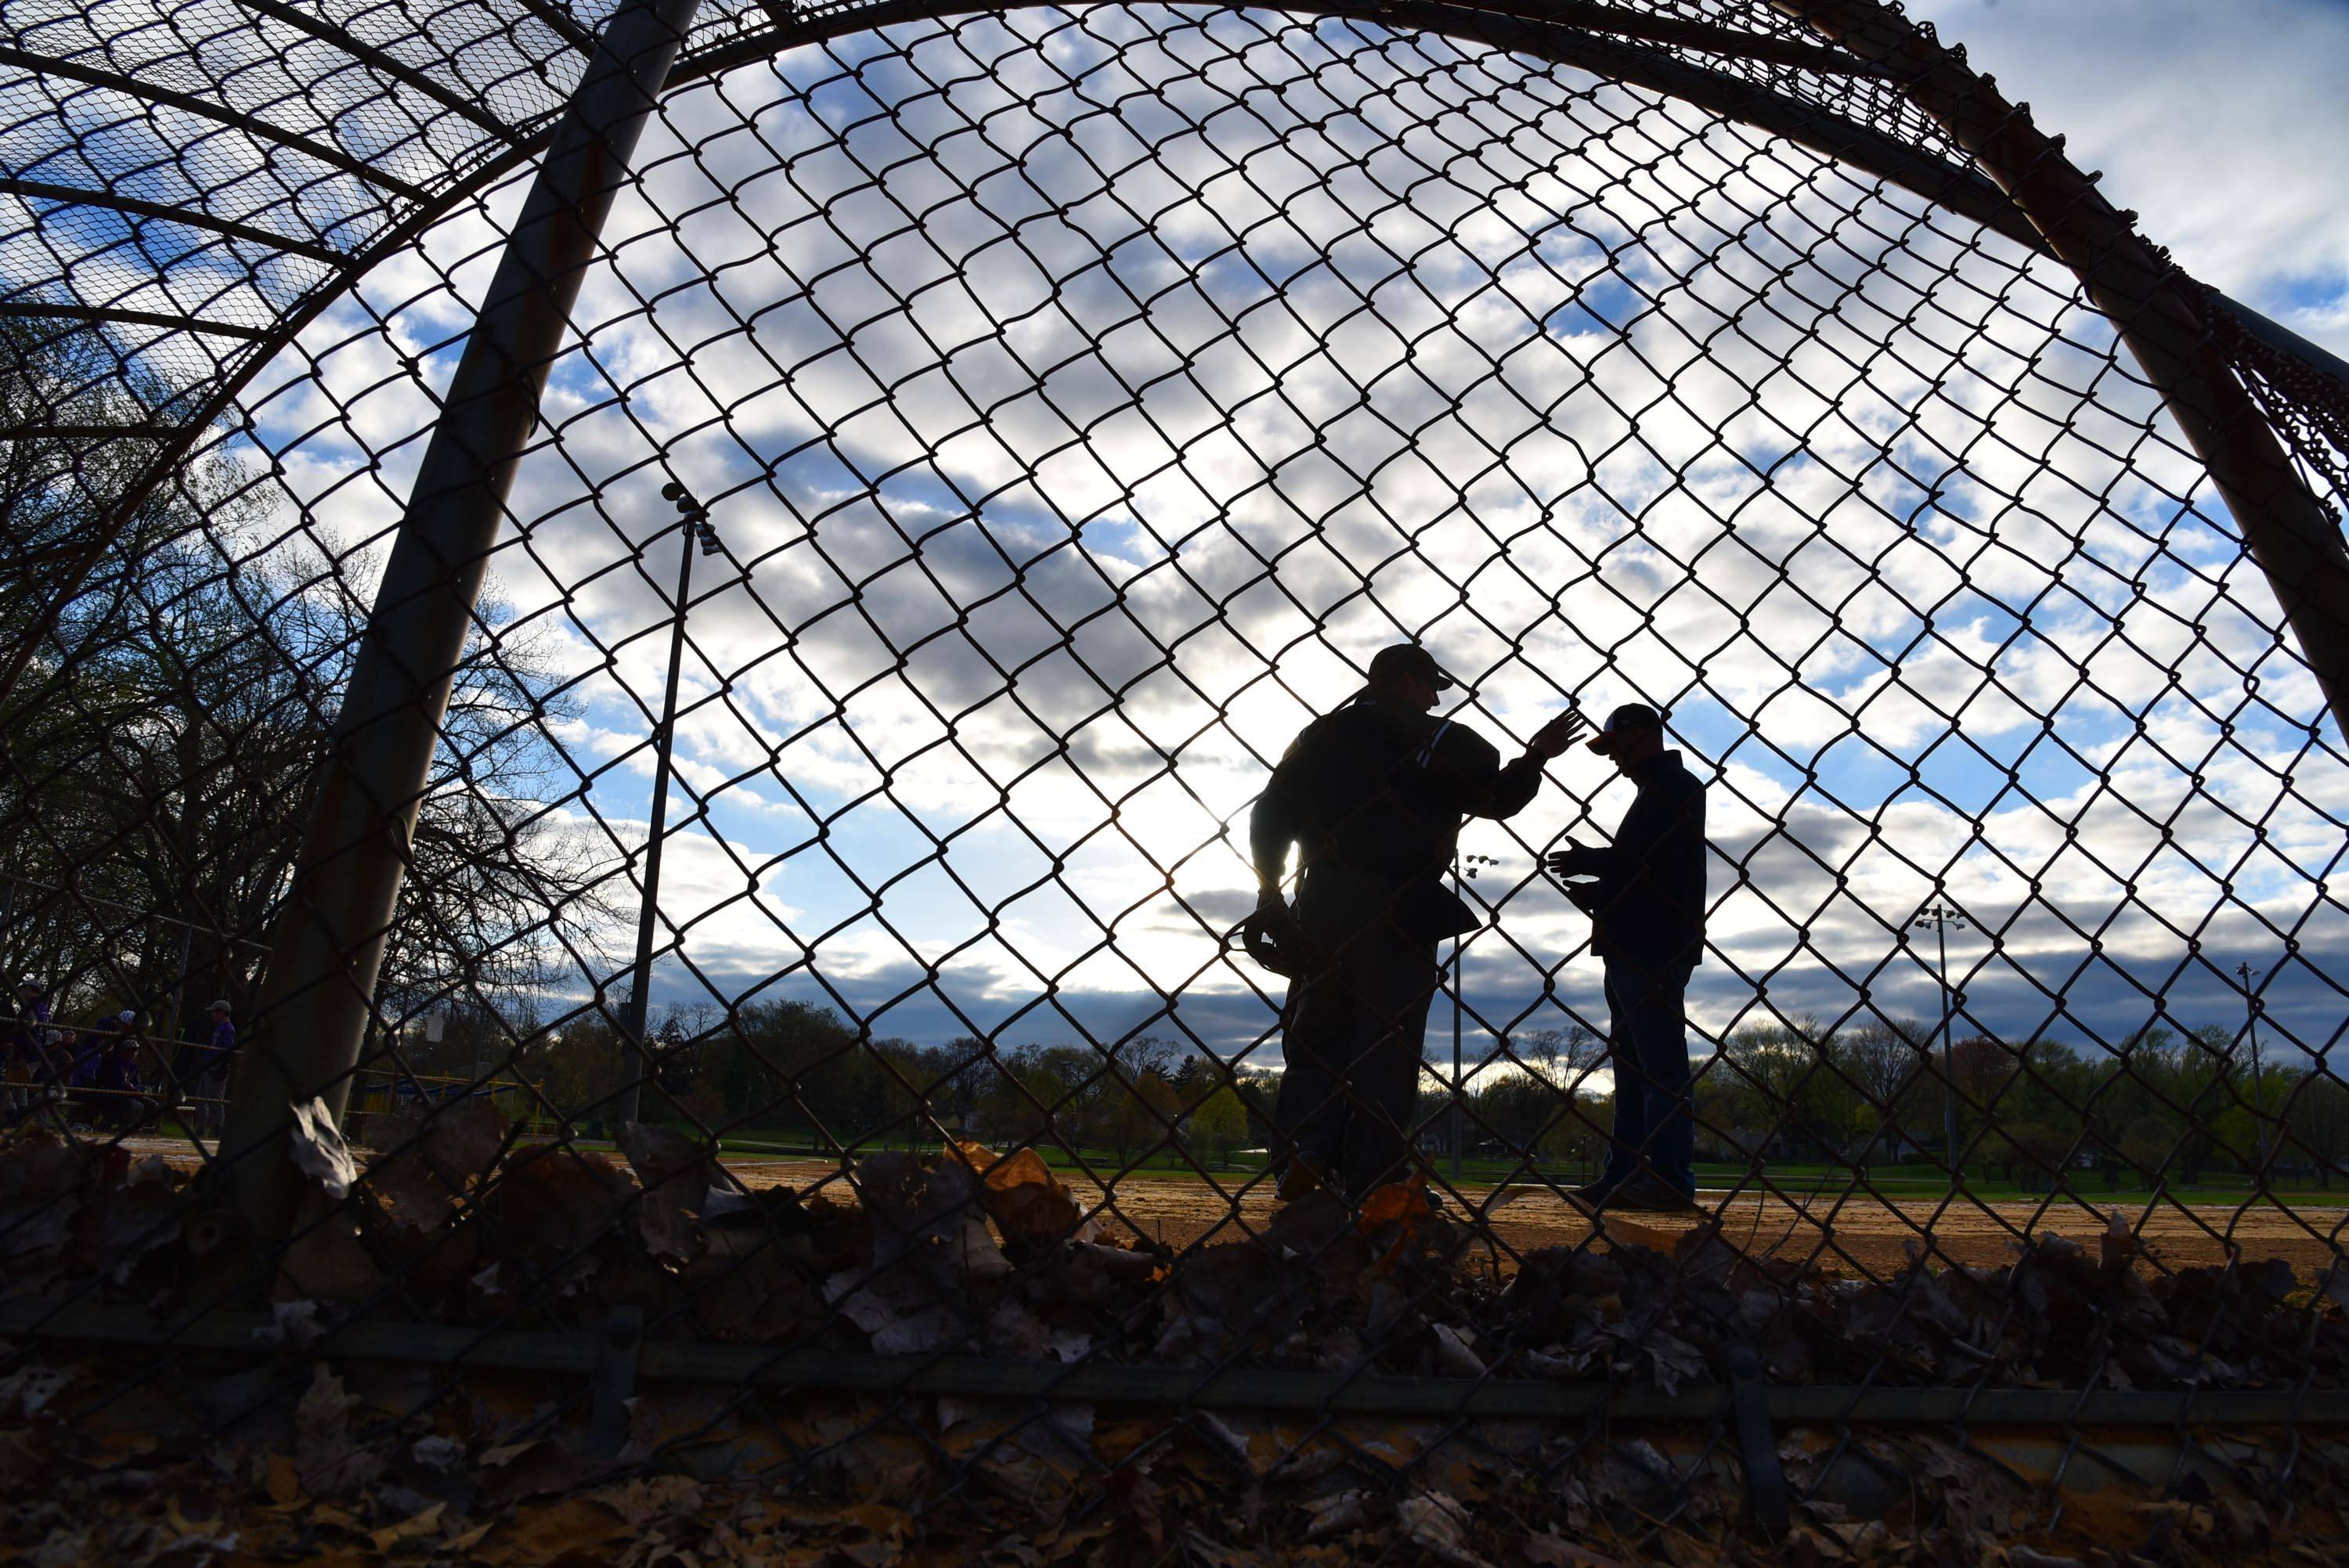 Youth leagues' costs rise as bad behavior contributes to umpire shortage